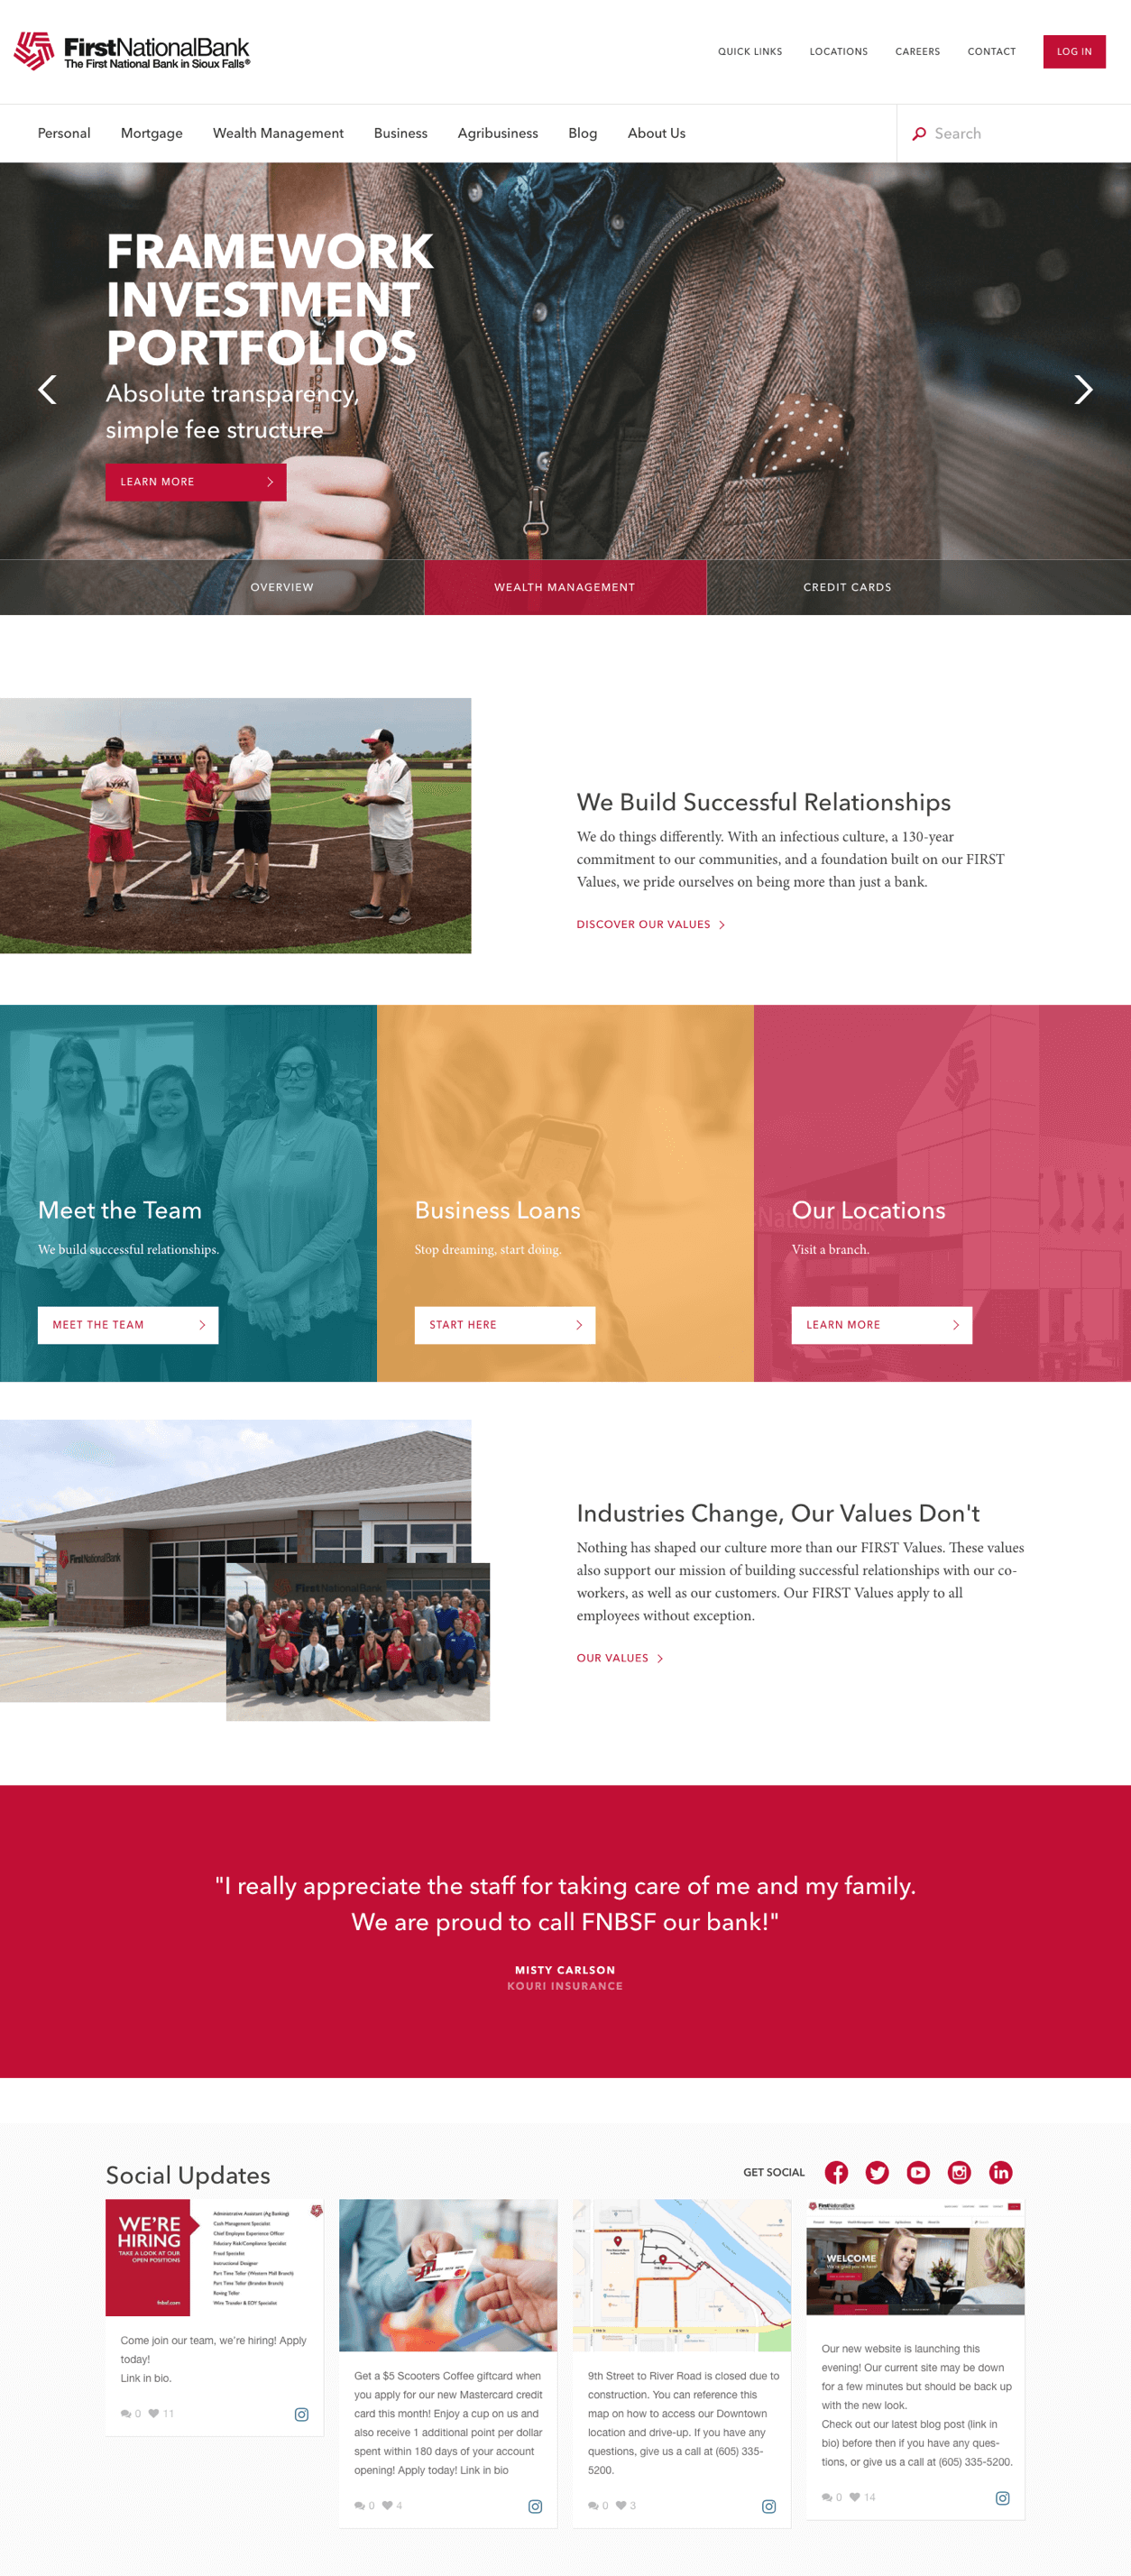 First National Bank Sioux Falls homepage details